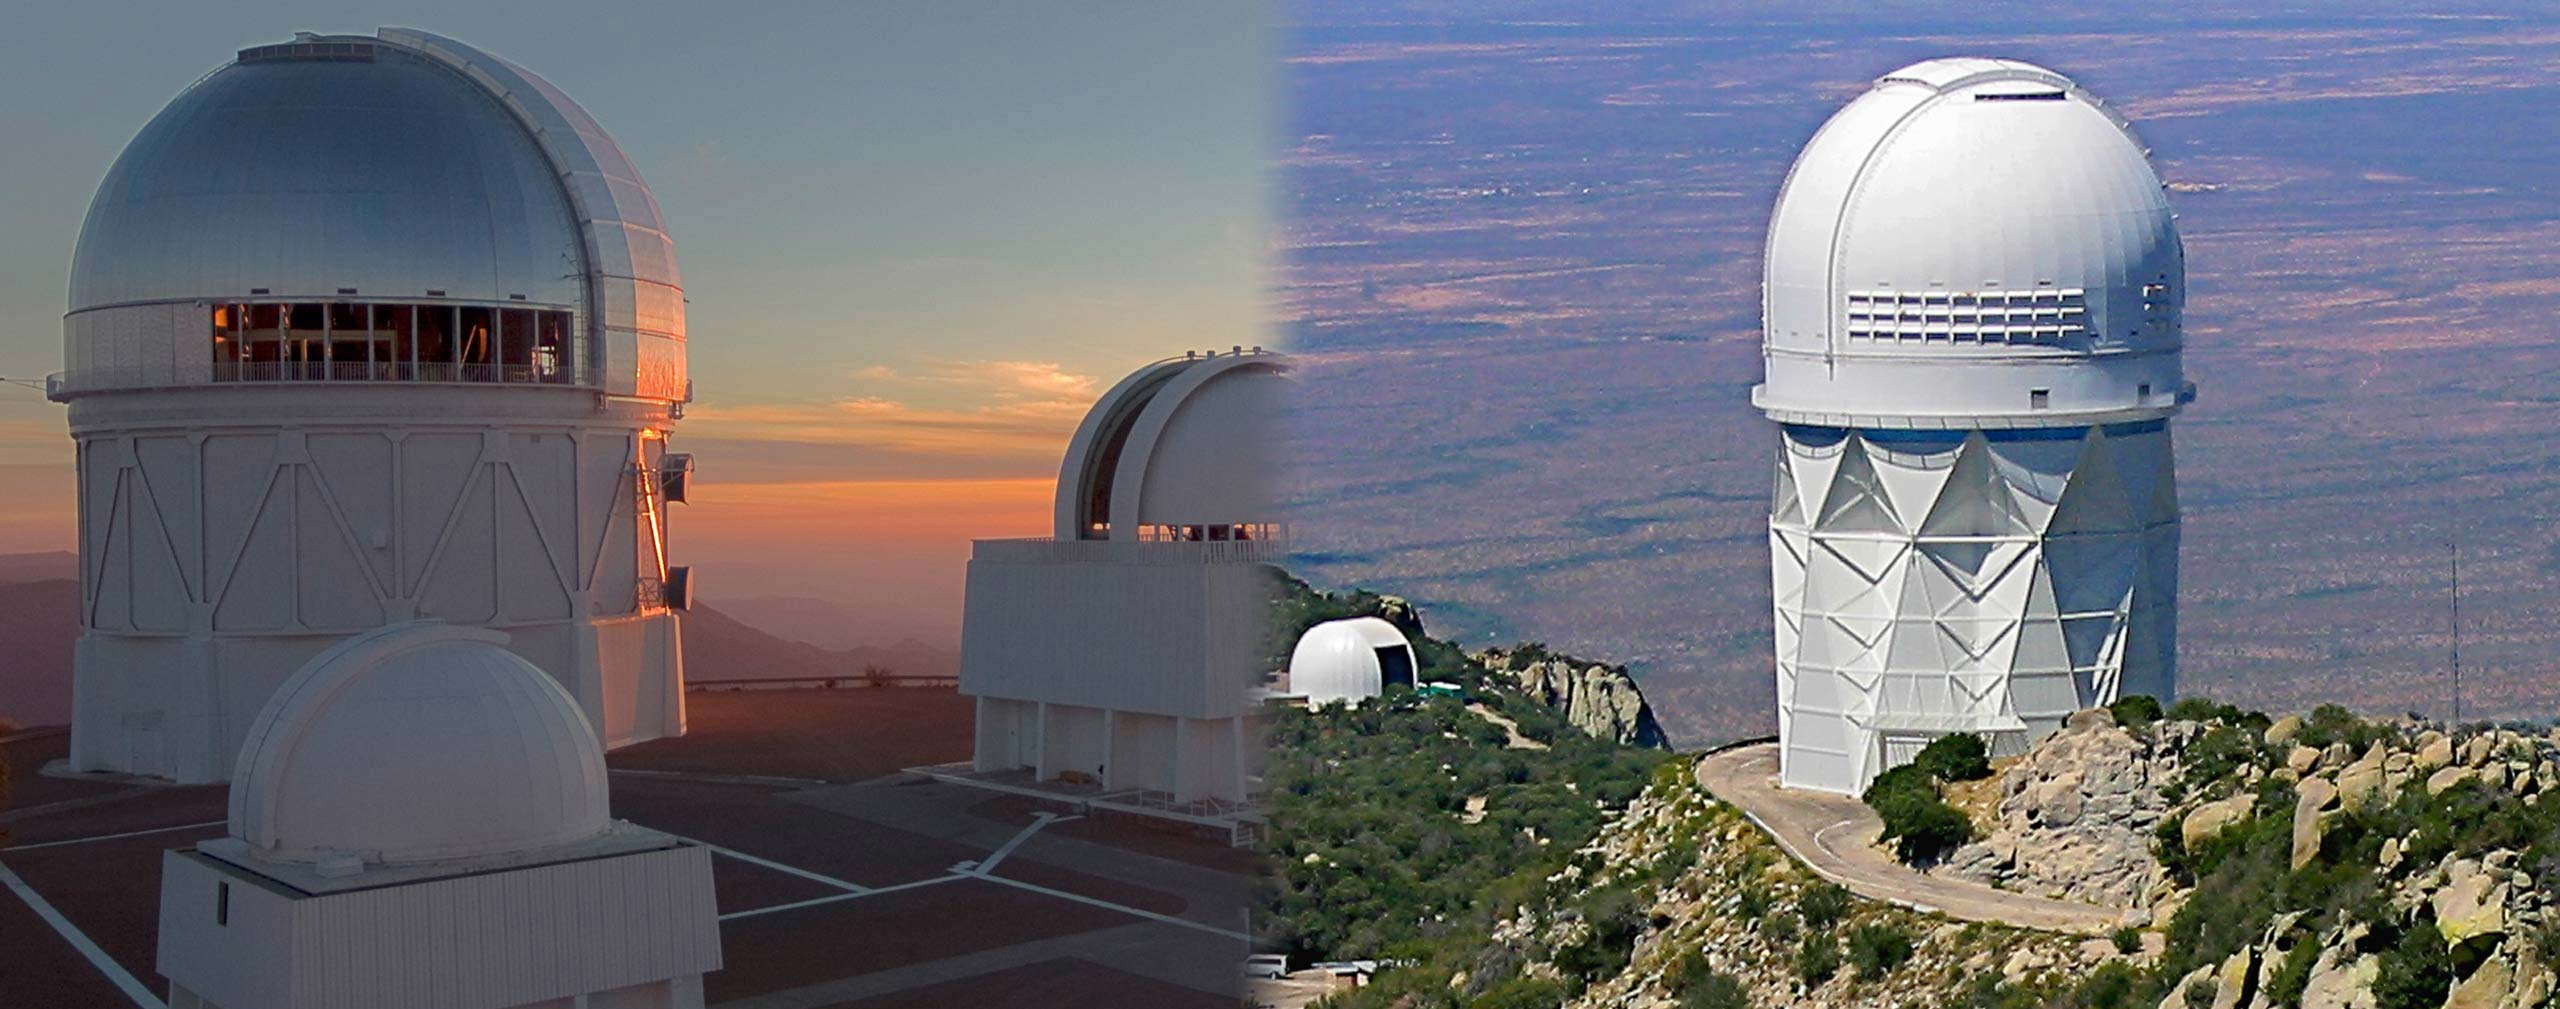 montage of AURA observatories in Chile and Arizona, Cerro Tololo and Kitt Peak